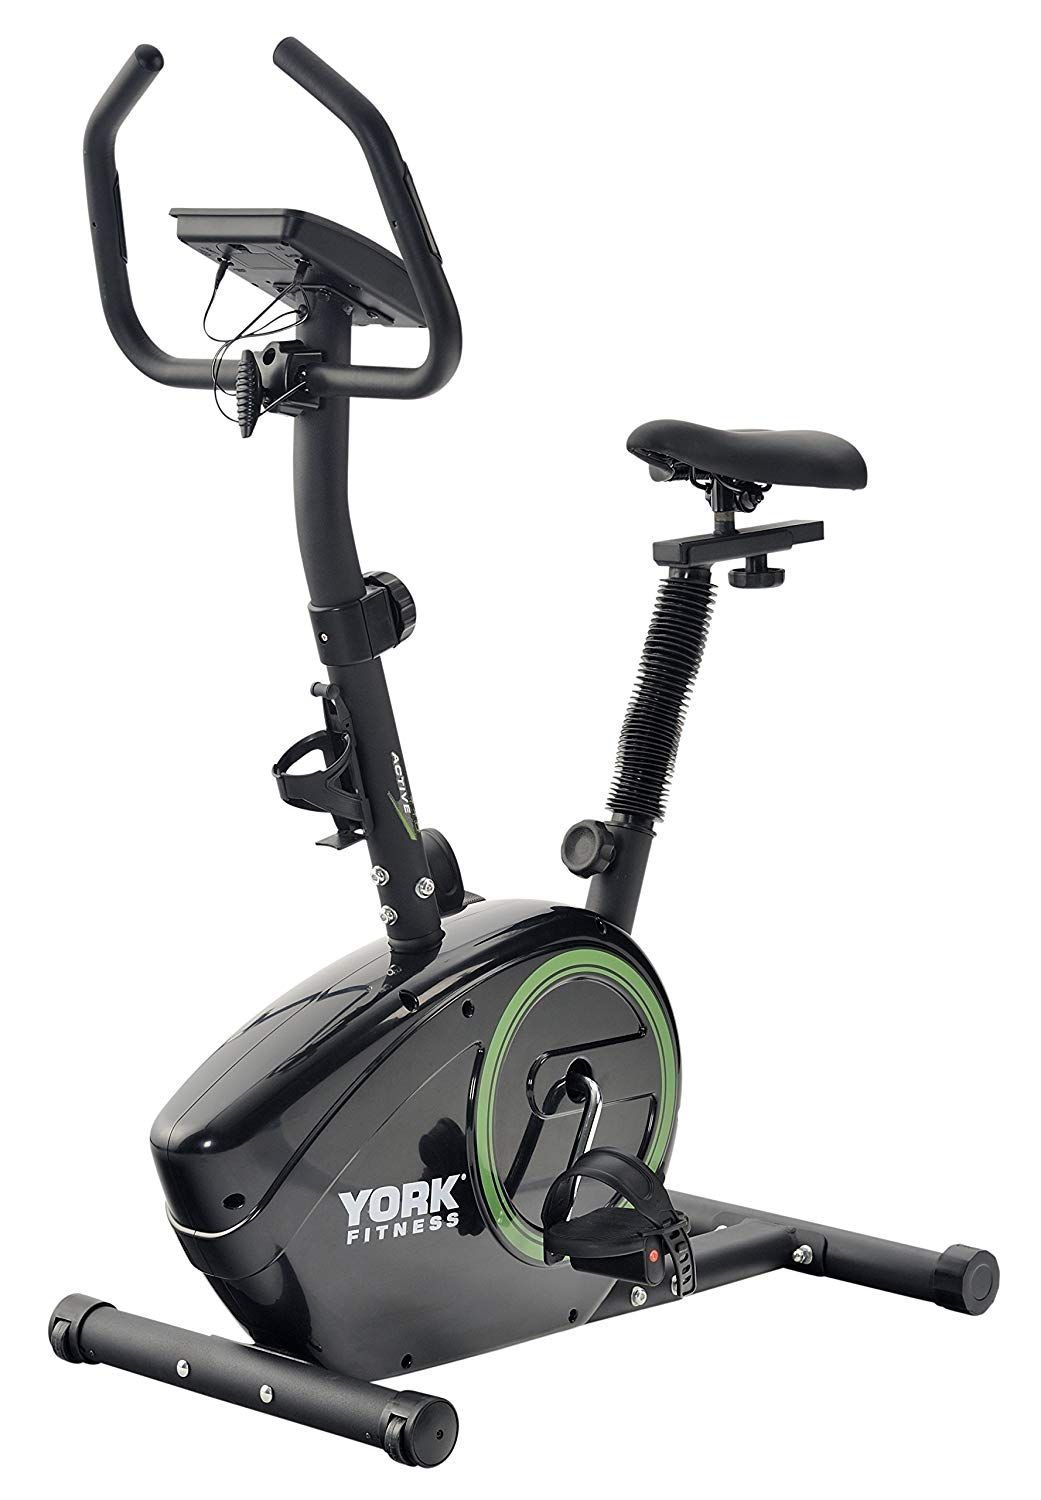 York Fitness Active 110 Exercise Cycle Black Green Amazon Co Uk